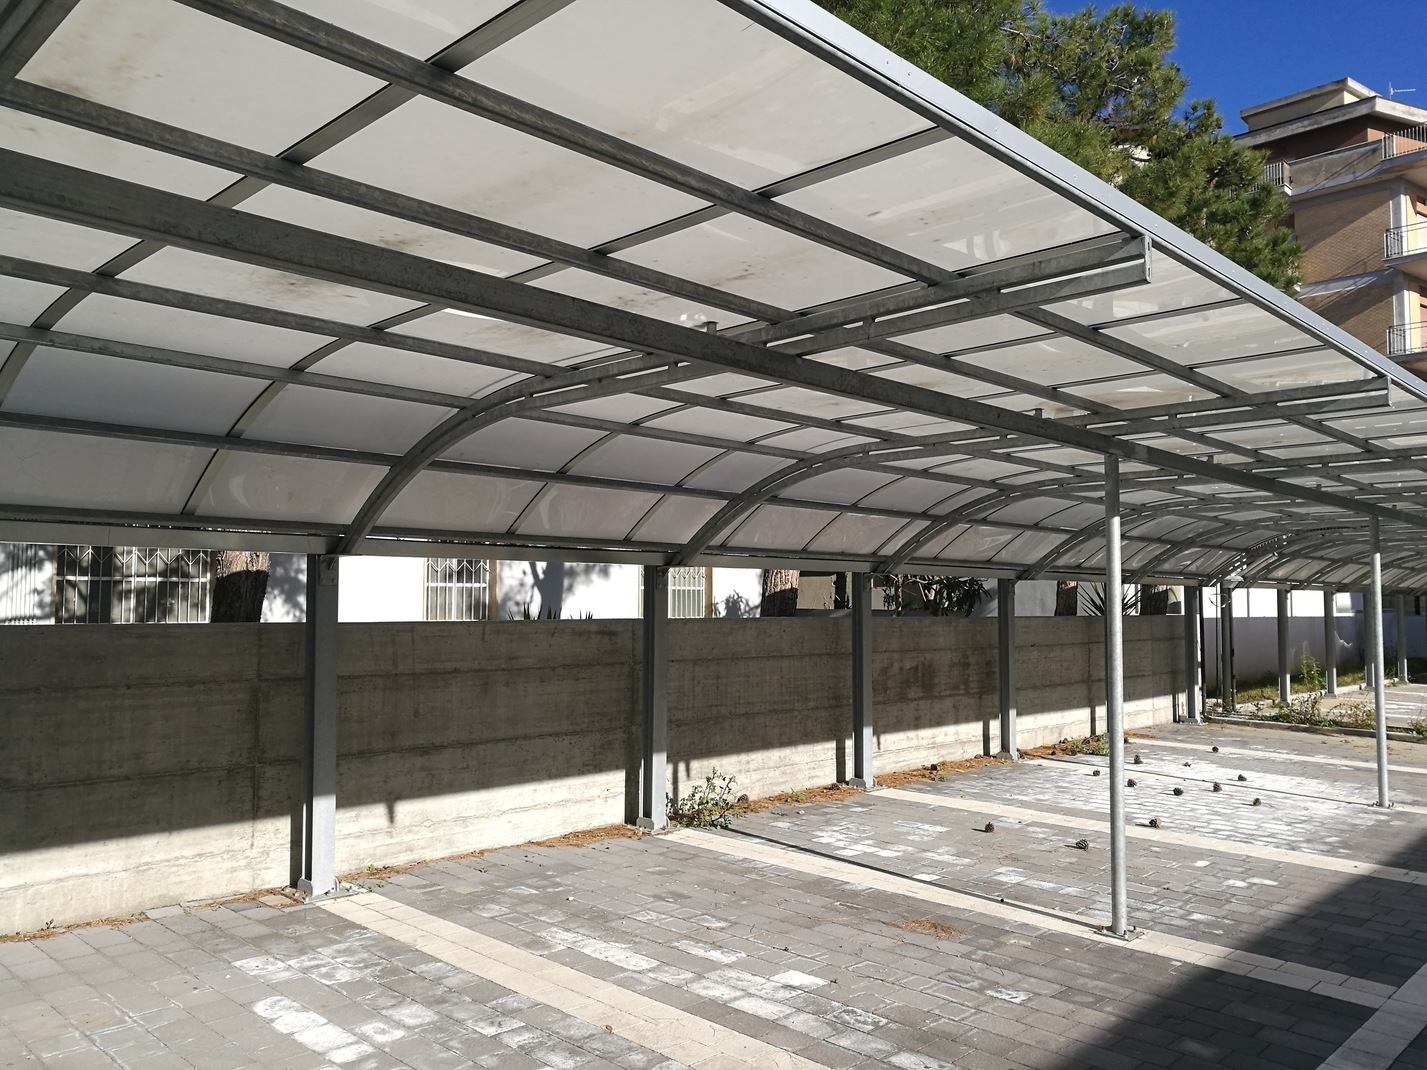 Top 3 Reasons You Need a Quality Aluminum Carport Carport Add On Ideas Html on porch add on ideas, rv add on ideas, home add on ideas, sunroom add on ideas, kitchen add on ideas,